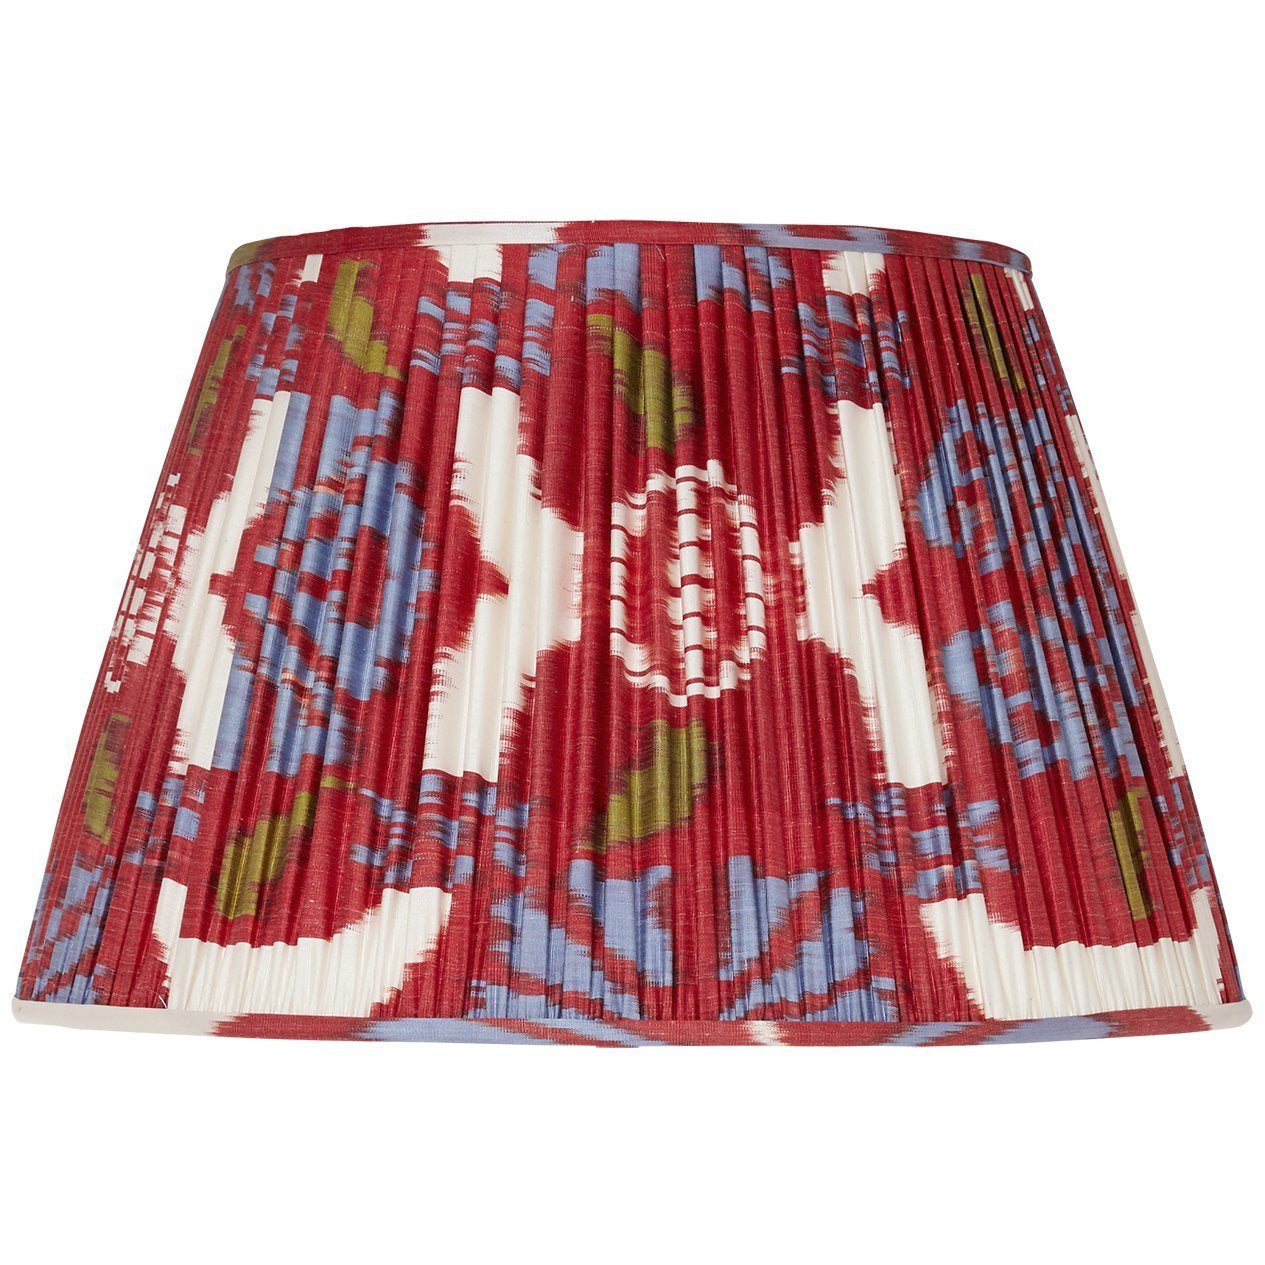 Red Silk Ikat Lampshades Shot